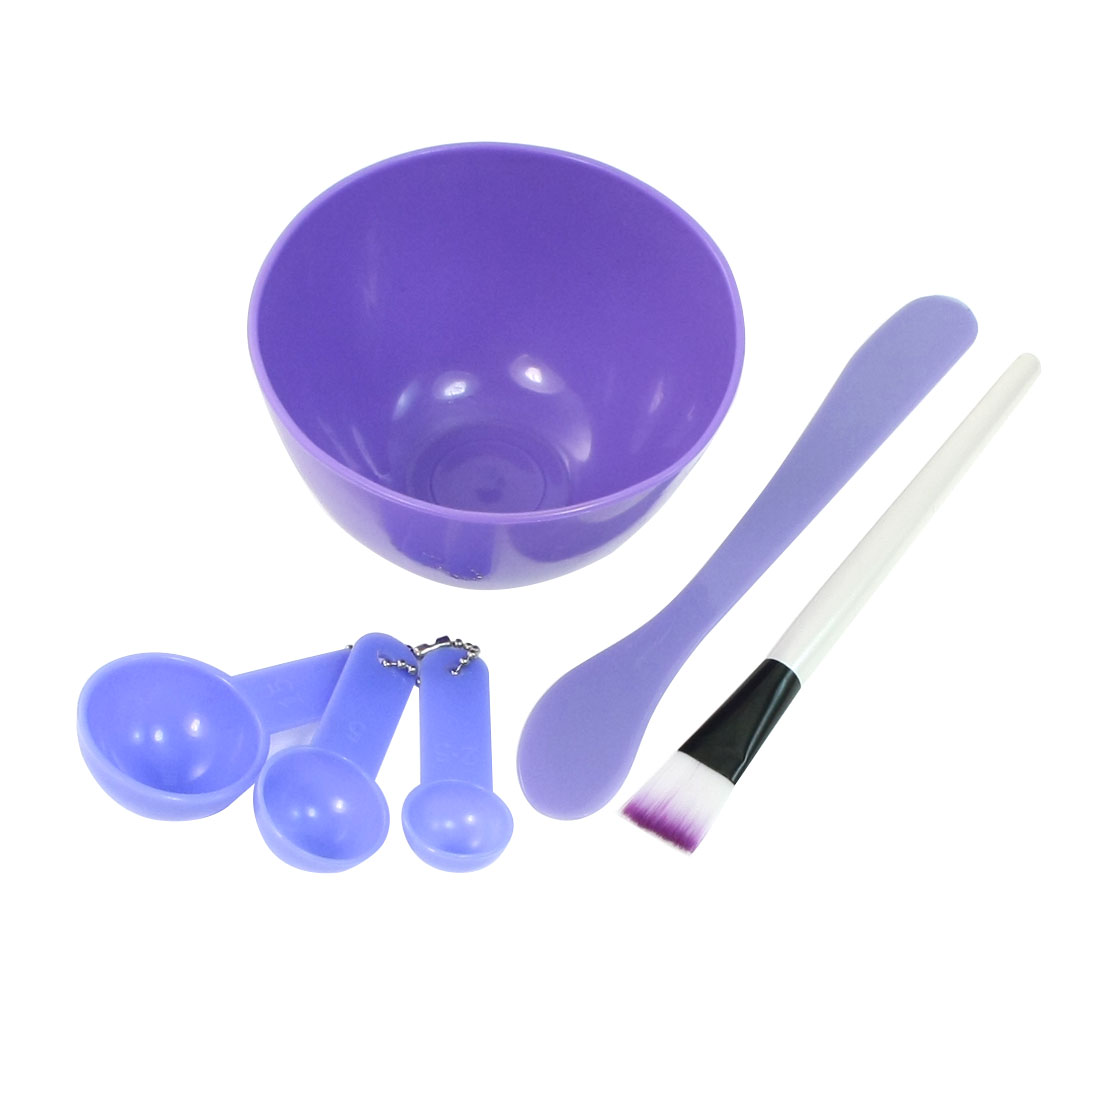 DIY Homemade Mask Bowl Spoons Brush Stick Facial Facemask Mixing Care Set Purple